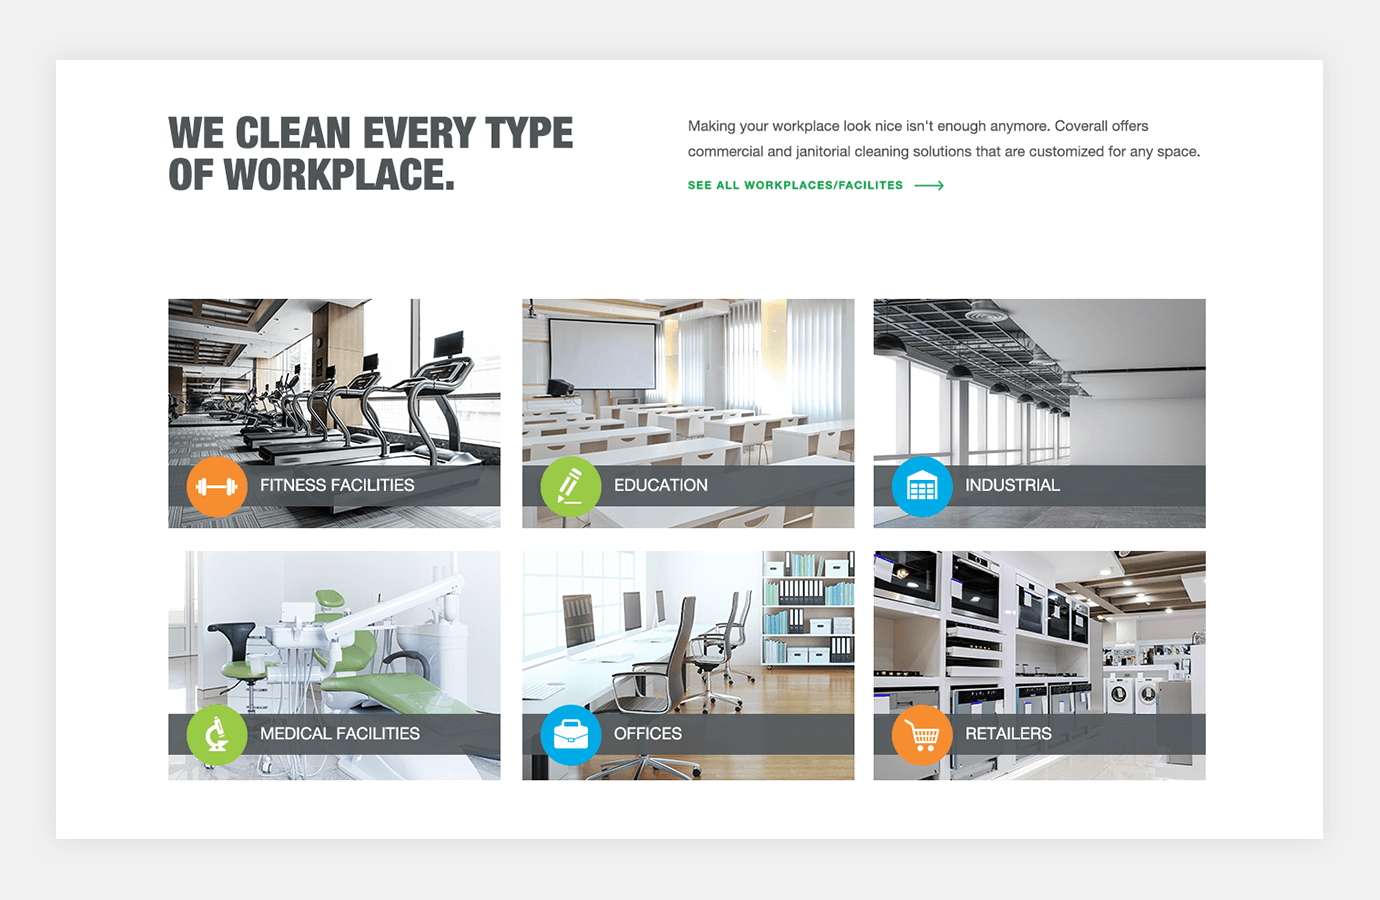 Screenshot of Coverall website showing types of workplaces they clean